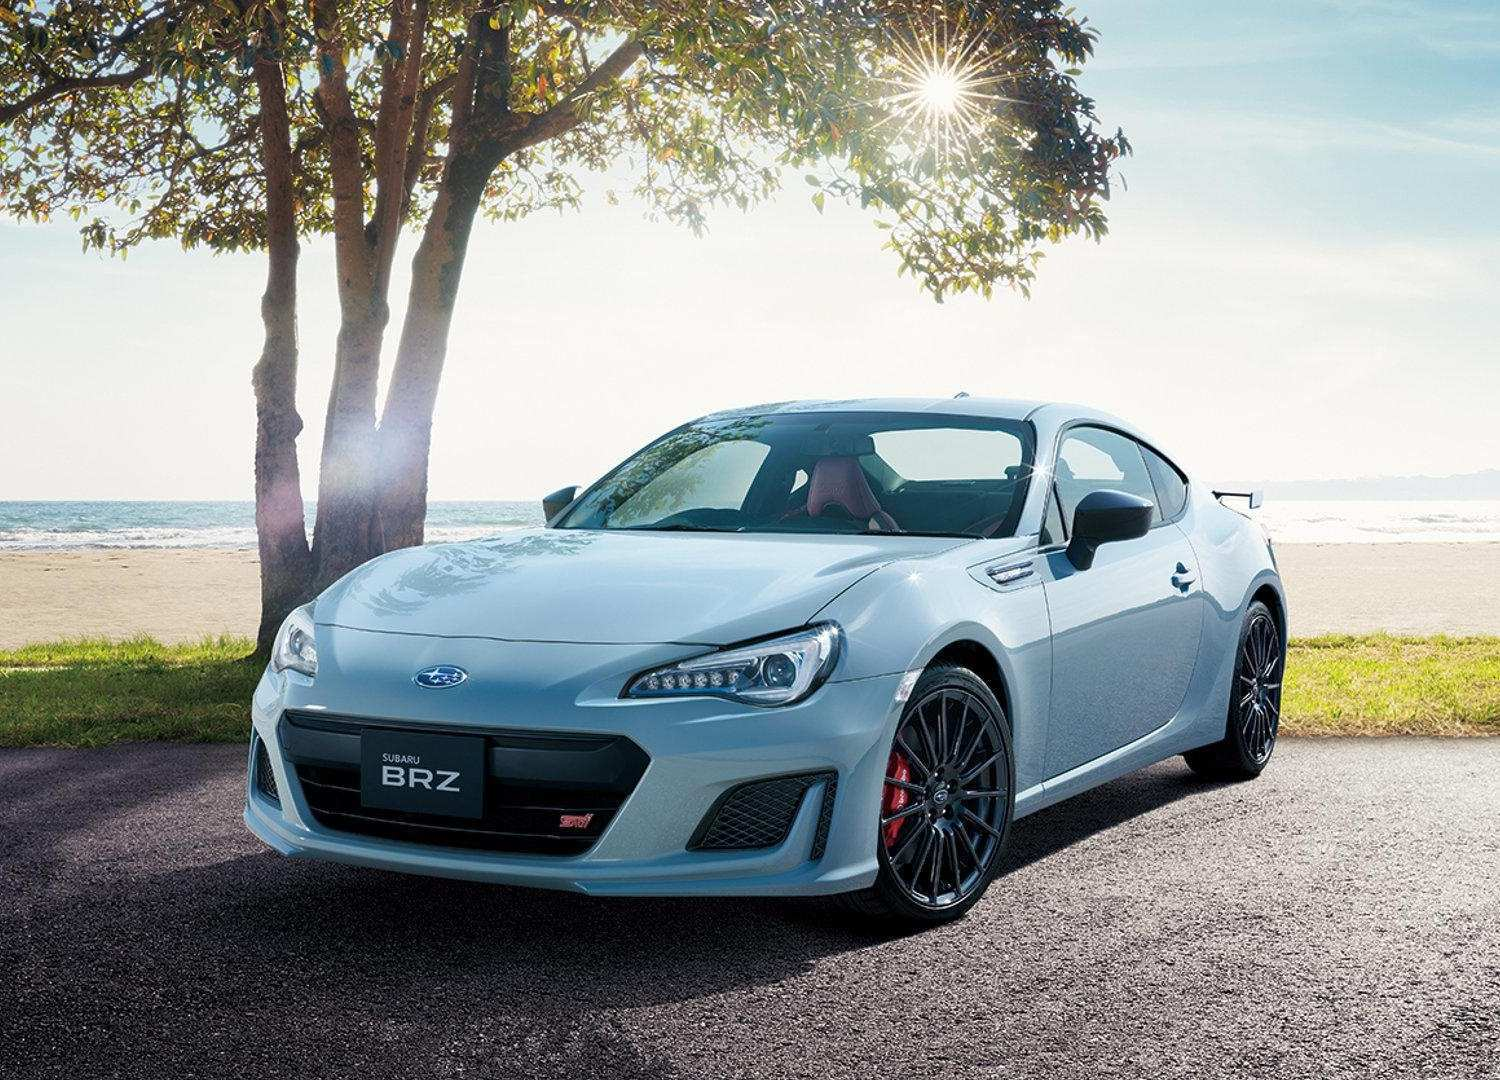 47 The 2020 Subaru Brz Turbo Images for 2020 Subaru Brz Turbo